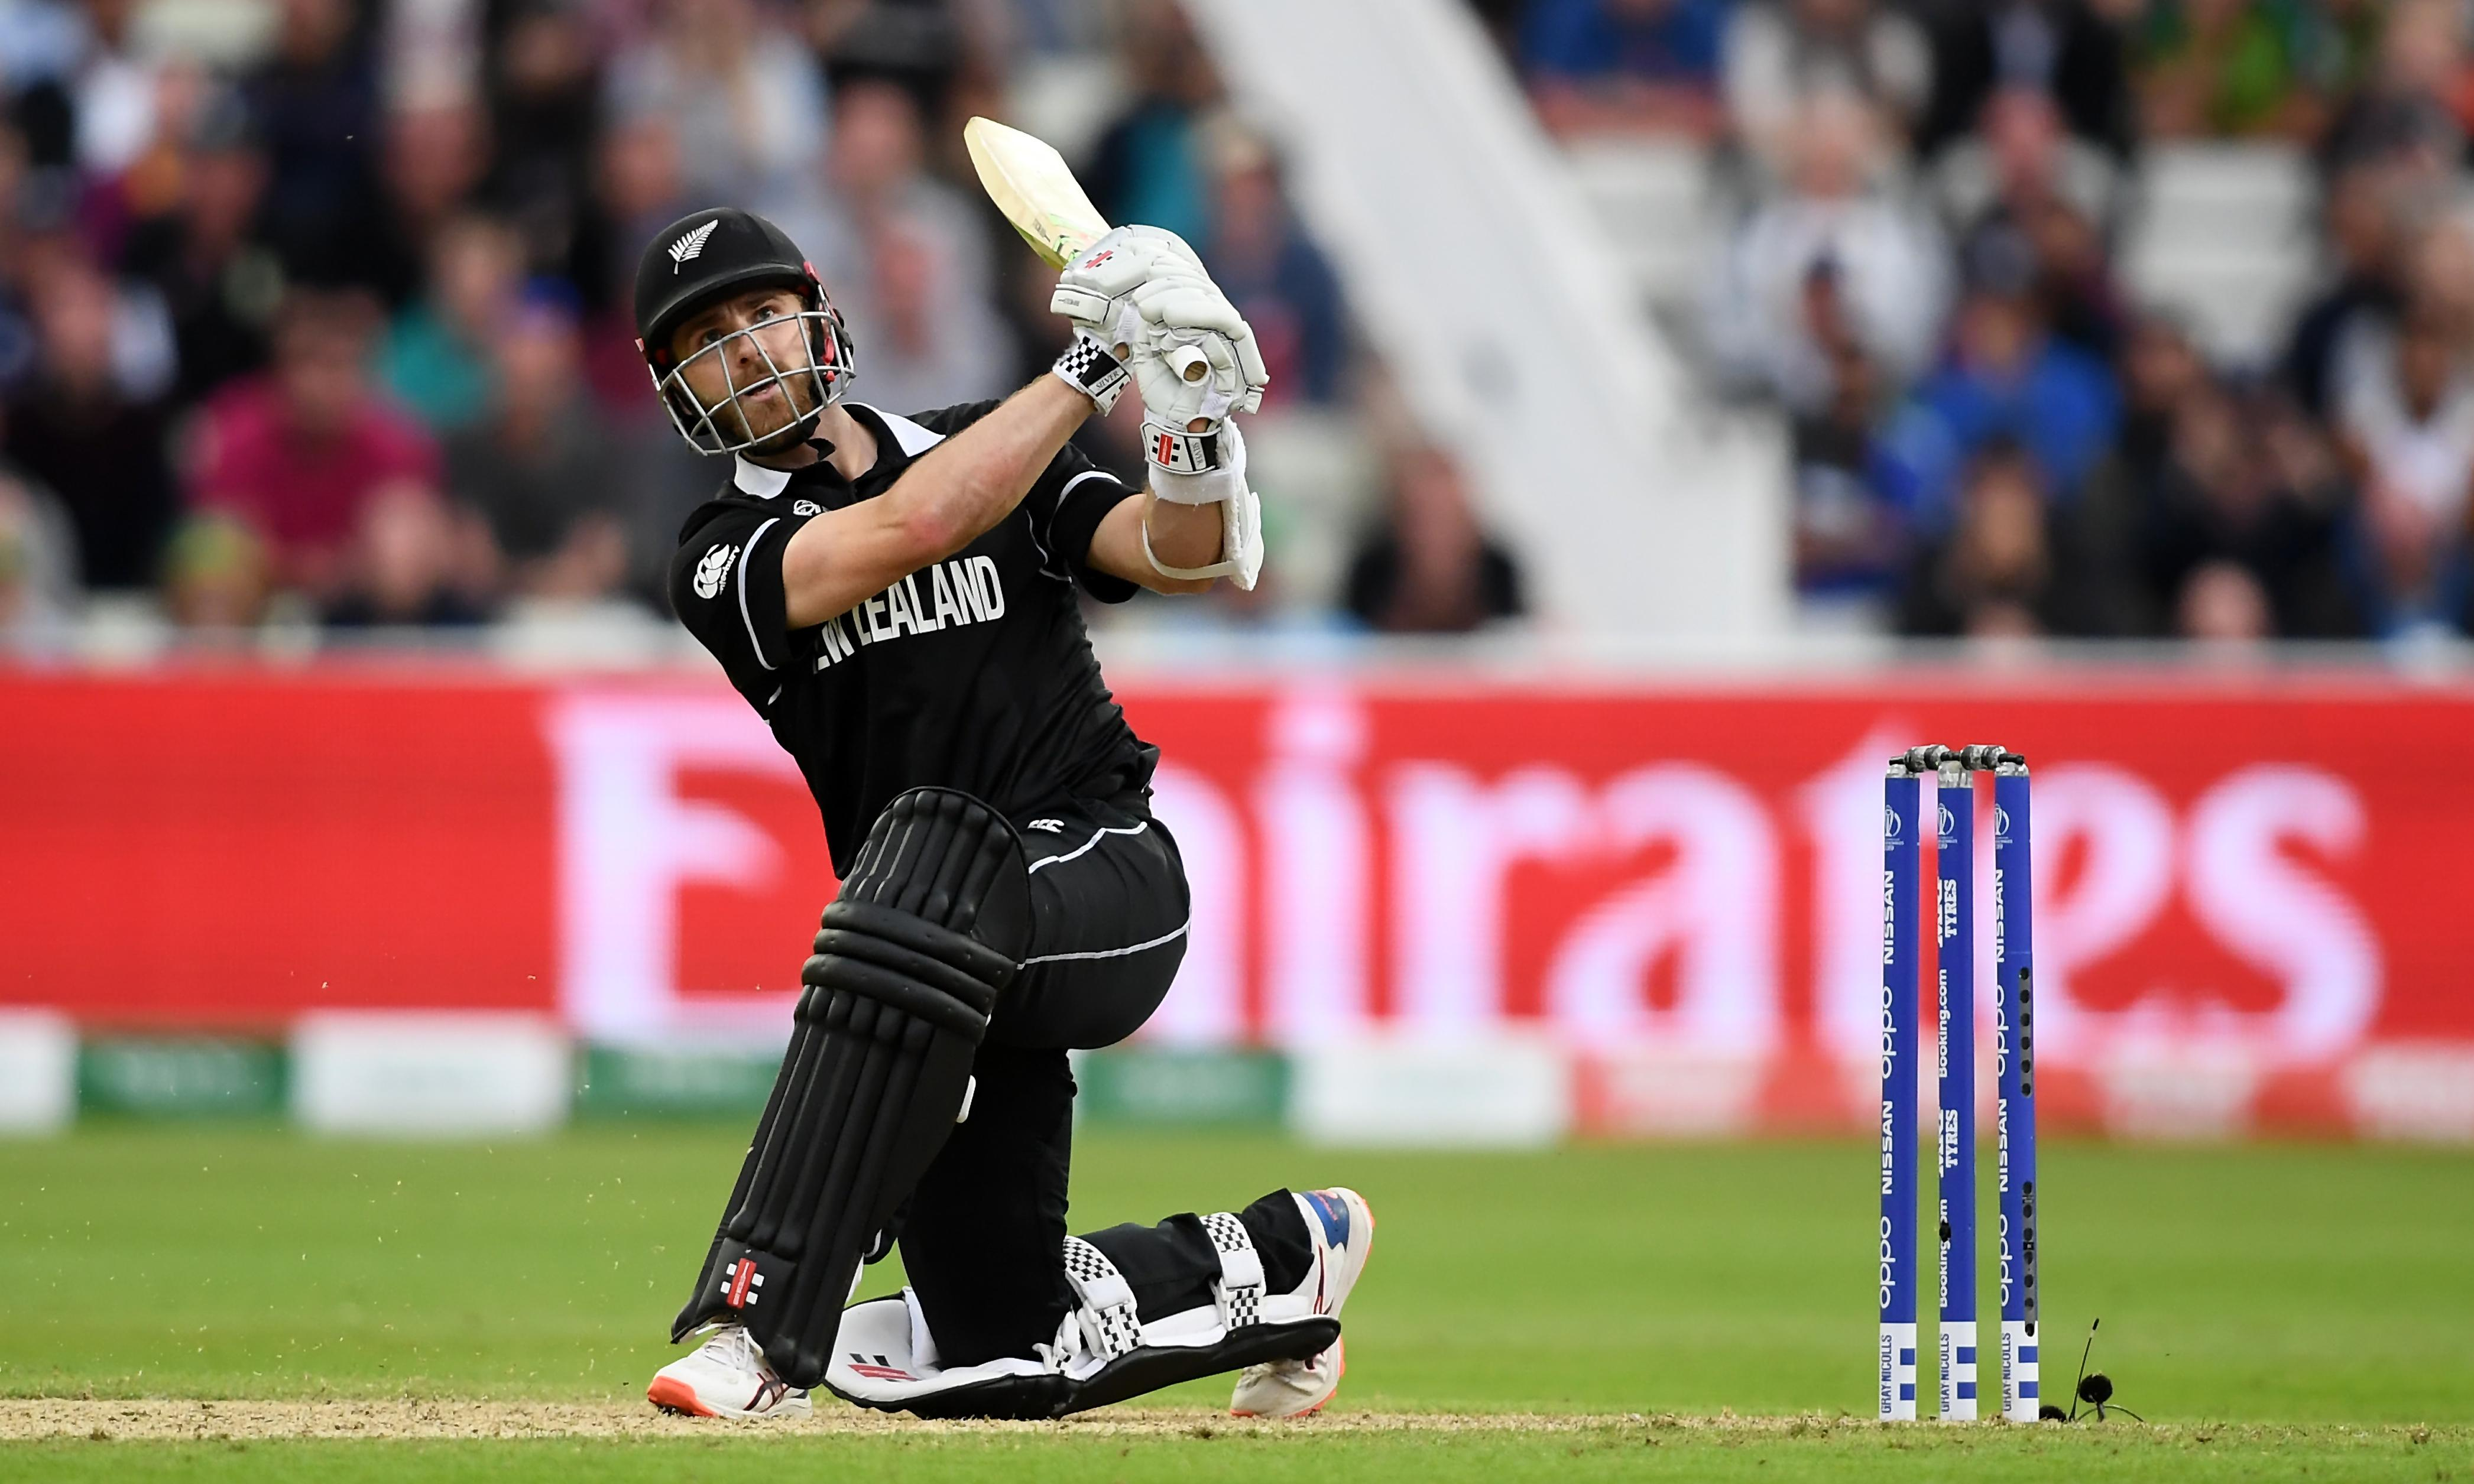 Kane Williamson guides New Zealand to narrow World Cup win over South Africa